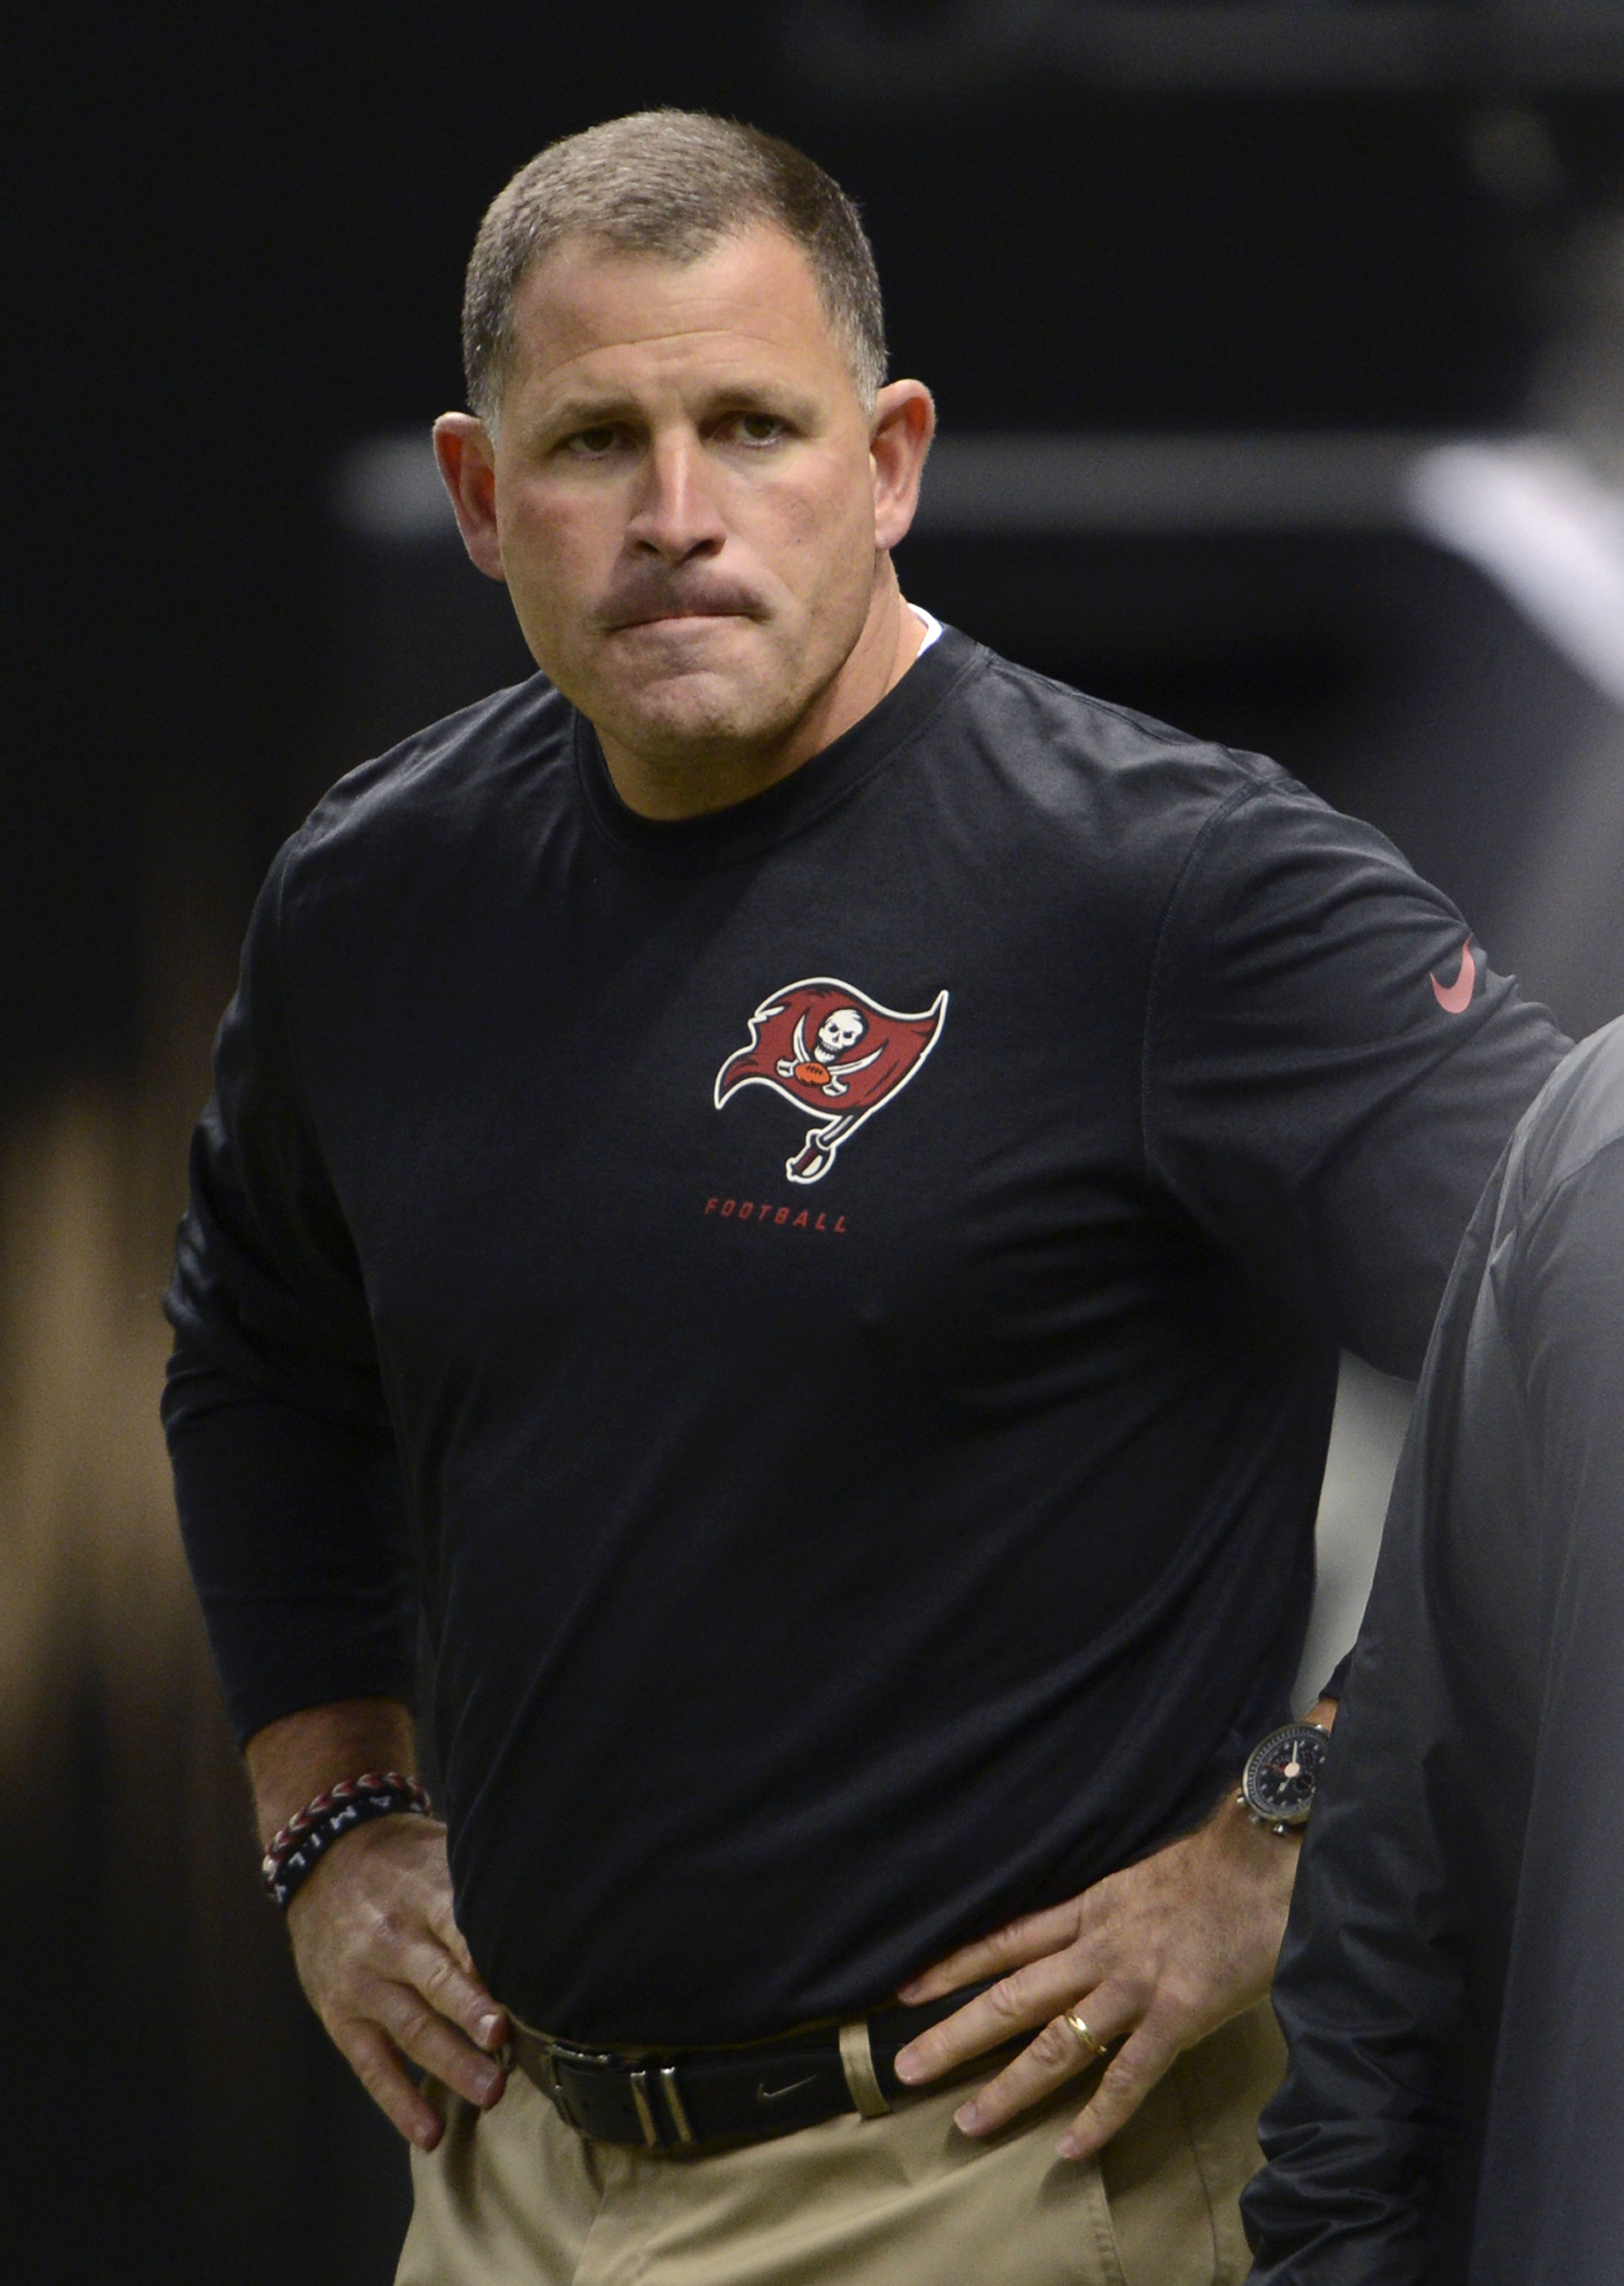 Tampa Bay Buccaneers head coach Greg Schiano is seen on the field before an NFL football game against the New Orleans Saints in New Orleans, Sunday, Dec. 29, 2013. (AP Photo/Bill Feig)